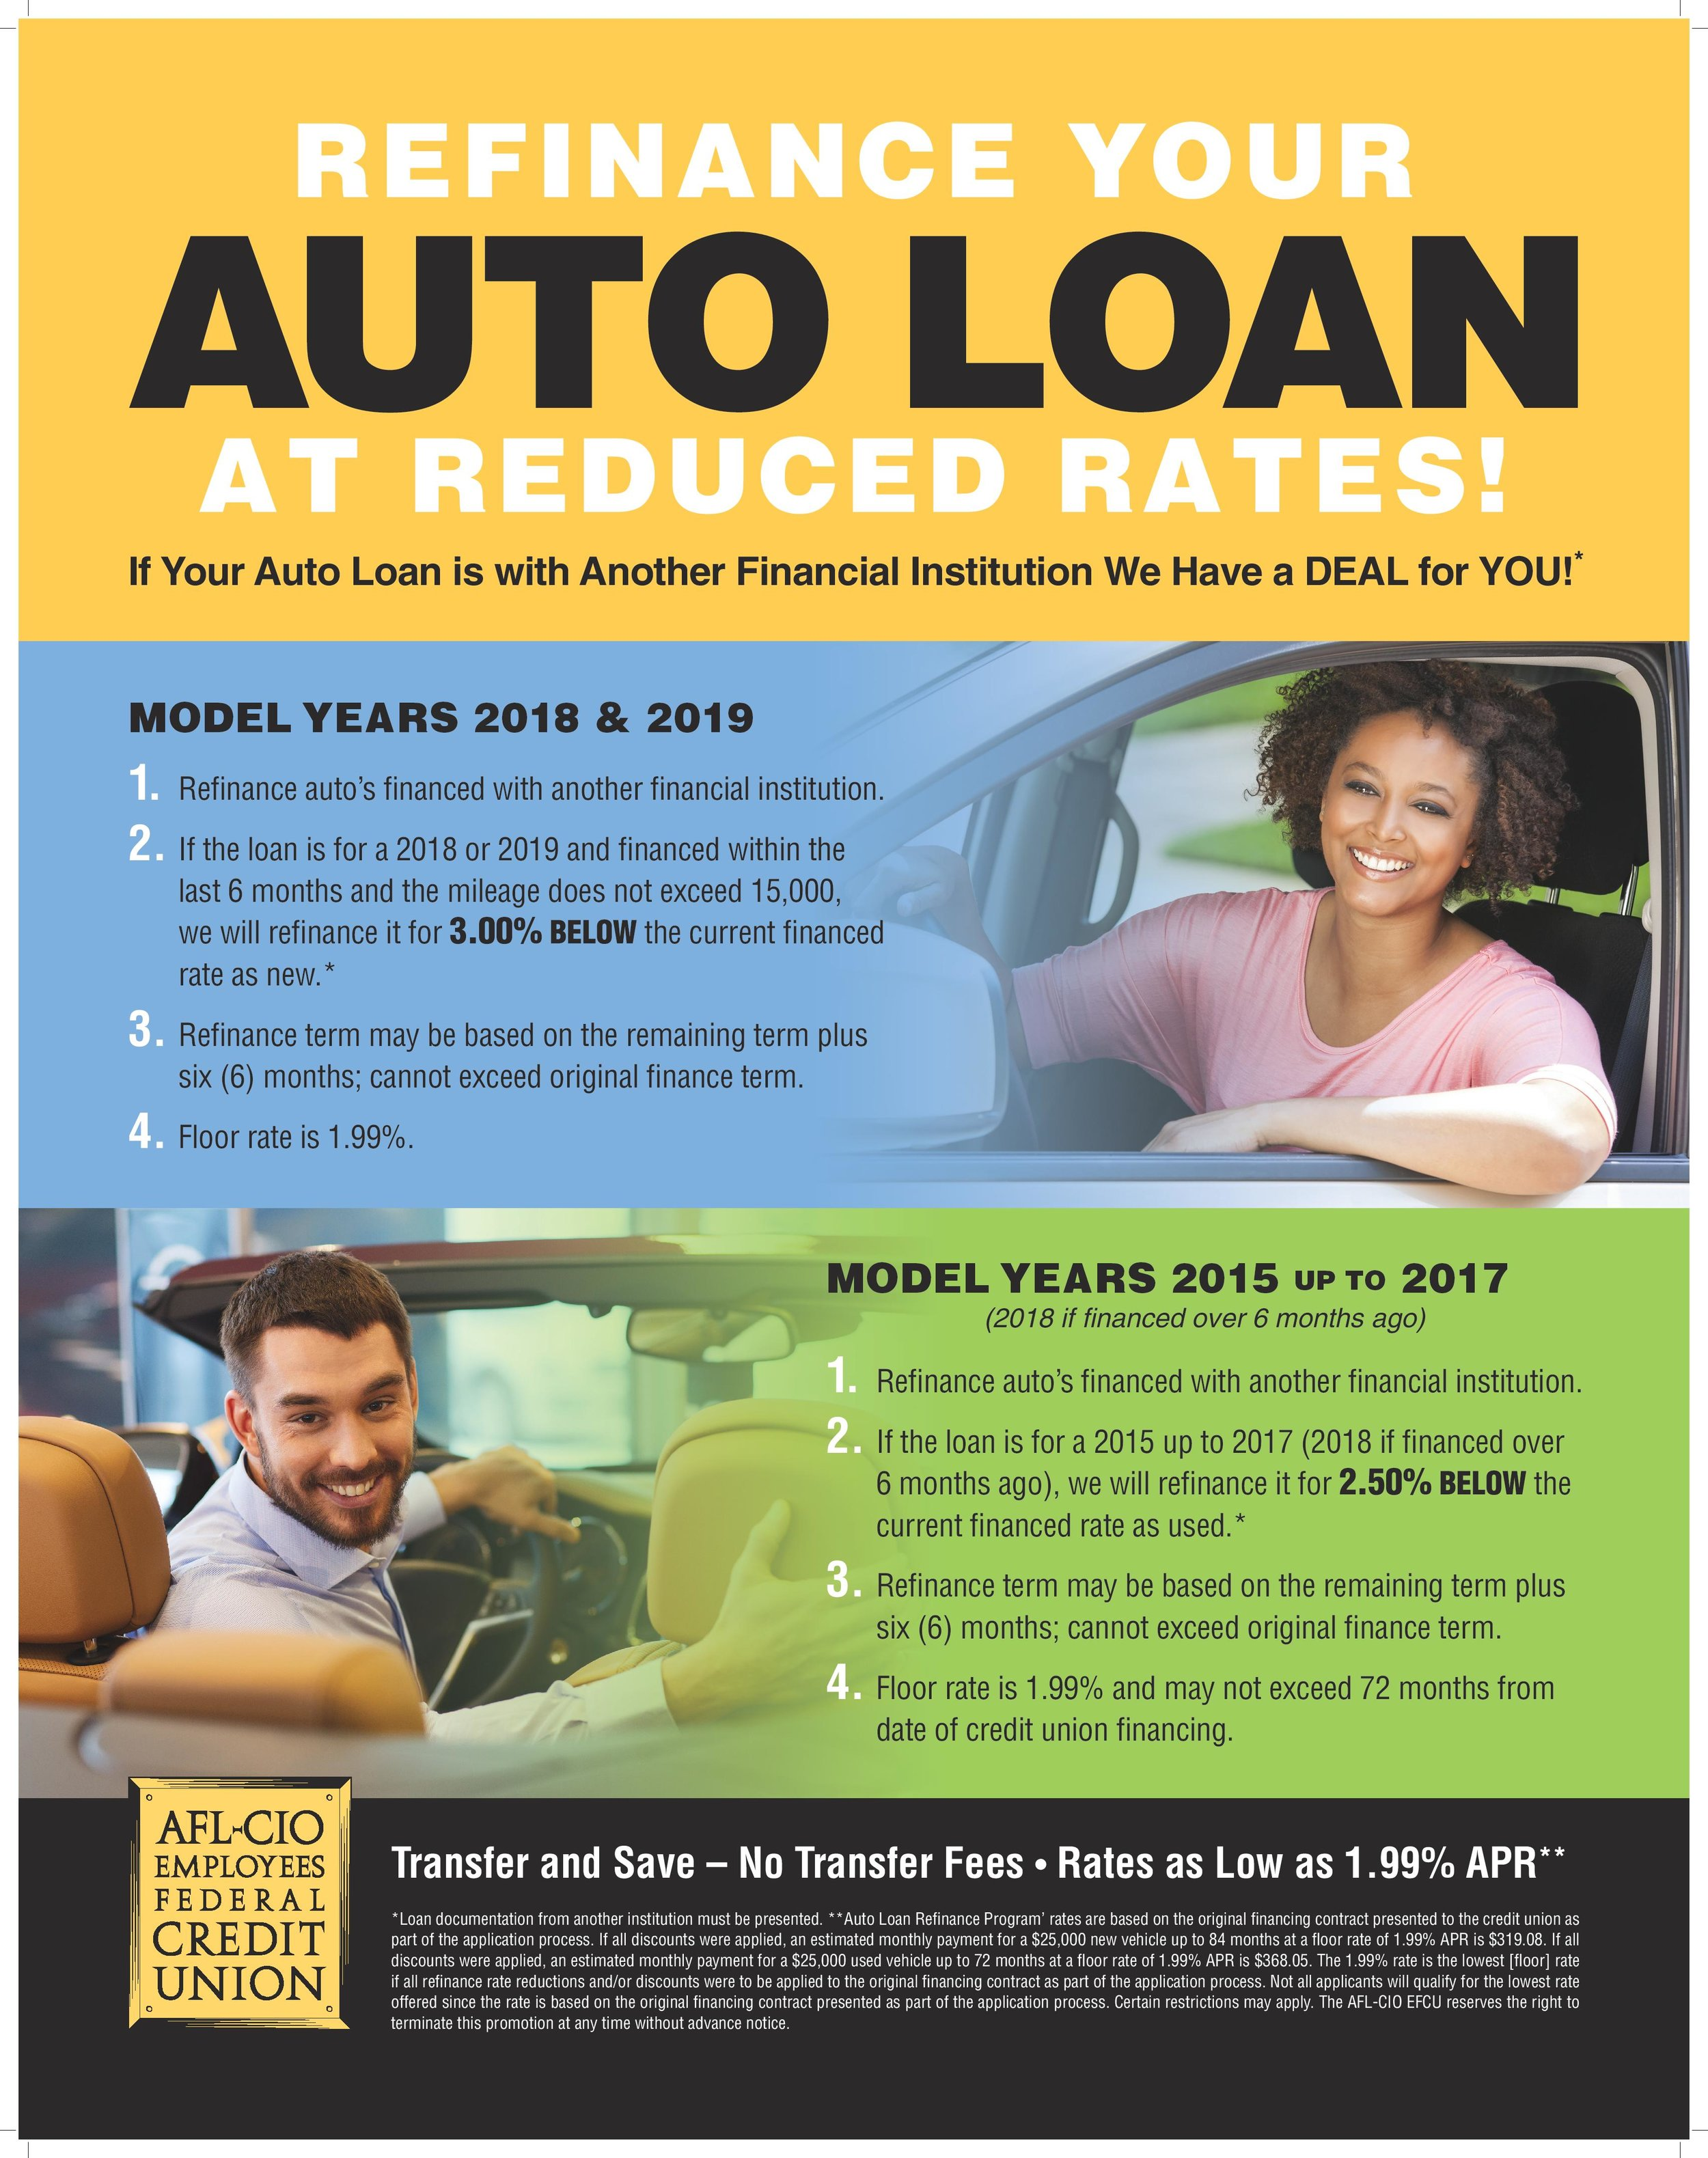 REFINANCE YOUR AUTO LOAN AT REDUCED RATES! If Your Auto Loan is with Another Financial Institution We Have a DEAL for YOU!* MODEL YEARS 2018 & 2019 Refinance auto's financed with another financial institution. 2. If the loan is for a 2018 or 2019 and financed within the last 6 months and the mileage does not exceed 15,000, we will refinance it for 3.00% BELOW the current financed rate as new.* 3. Refinance term may be based on the remaining term plus six (6) months; cannot exceed original finance term. Floor rate is 1.99% MODEL YEARS 2015 UP TO 2017 (2018 if financed over 6 months ago) Refinance auto's financed with another financial institution. 2. If the loan is for a 2015 up to 2017 (2018 if financed over 6 months ago), we will refinance it for 2.50% BELOW the current financed rate as used.* 3. Refinance term may be based on the remaining term plus six (6) months; cannot exceed original finance term. 4. Floor rate is 1.99% and may not exceed 72 months from date of credit union financing.  Transfer and Save – No Transfer Fees • Rates as Low as 1.99% APR** *Loan documentation from another institution must be presented. **Auto Loan Refinance Program' rates are based on the original financing contract presented to the credit union as part of the application process. If all discounts were applied, an estimated monthly payment for a $25,000 new vehicle up to 84 months at a floor rate of 1.99% APR is $319.08. If all discounts were applied, an estimated monthly payment for a $25,000 used vehicle up to 72 months at a floor rate of 1.99% APR is $368.05. The 1.99% rate is the lowest [floor] rate if all refinance rate reductions and/or discounts were to be applied to the original financing contract as part of the application process. Not all applicants will qualify for the lowest rate offered since the rate is based on the original financing contract presented as part of the application process. Certain restrictions may apply. The AFL-CIO EFCU reserves the right to terminate